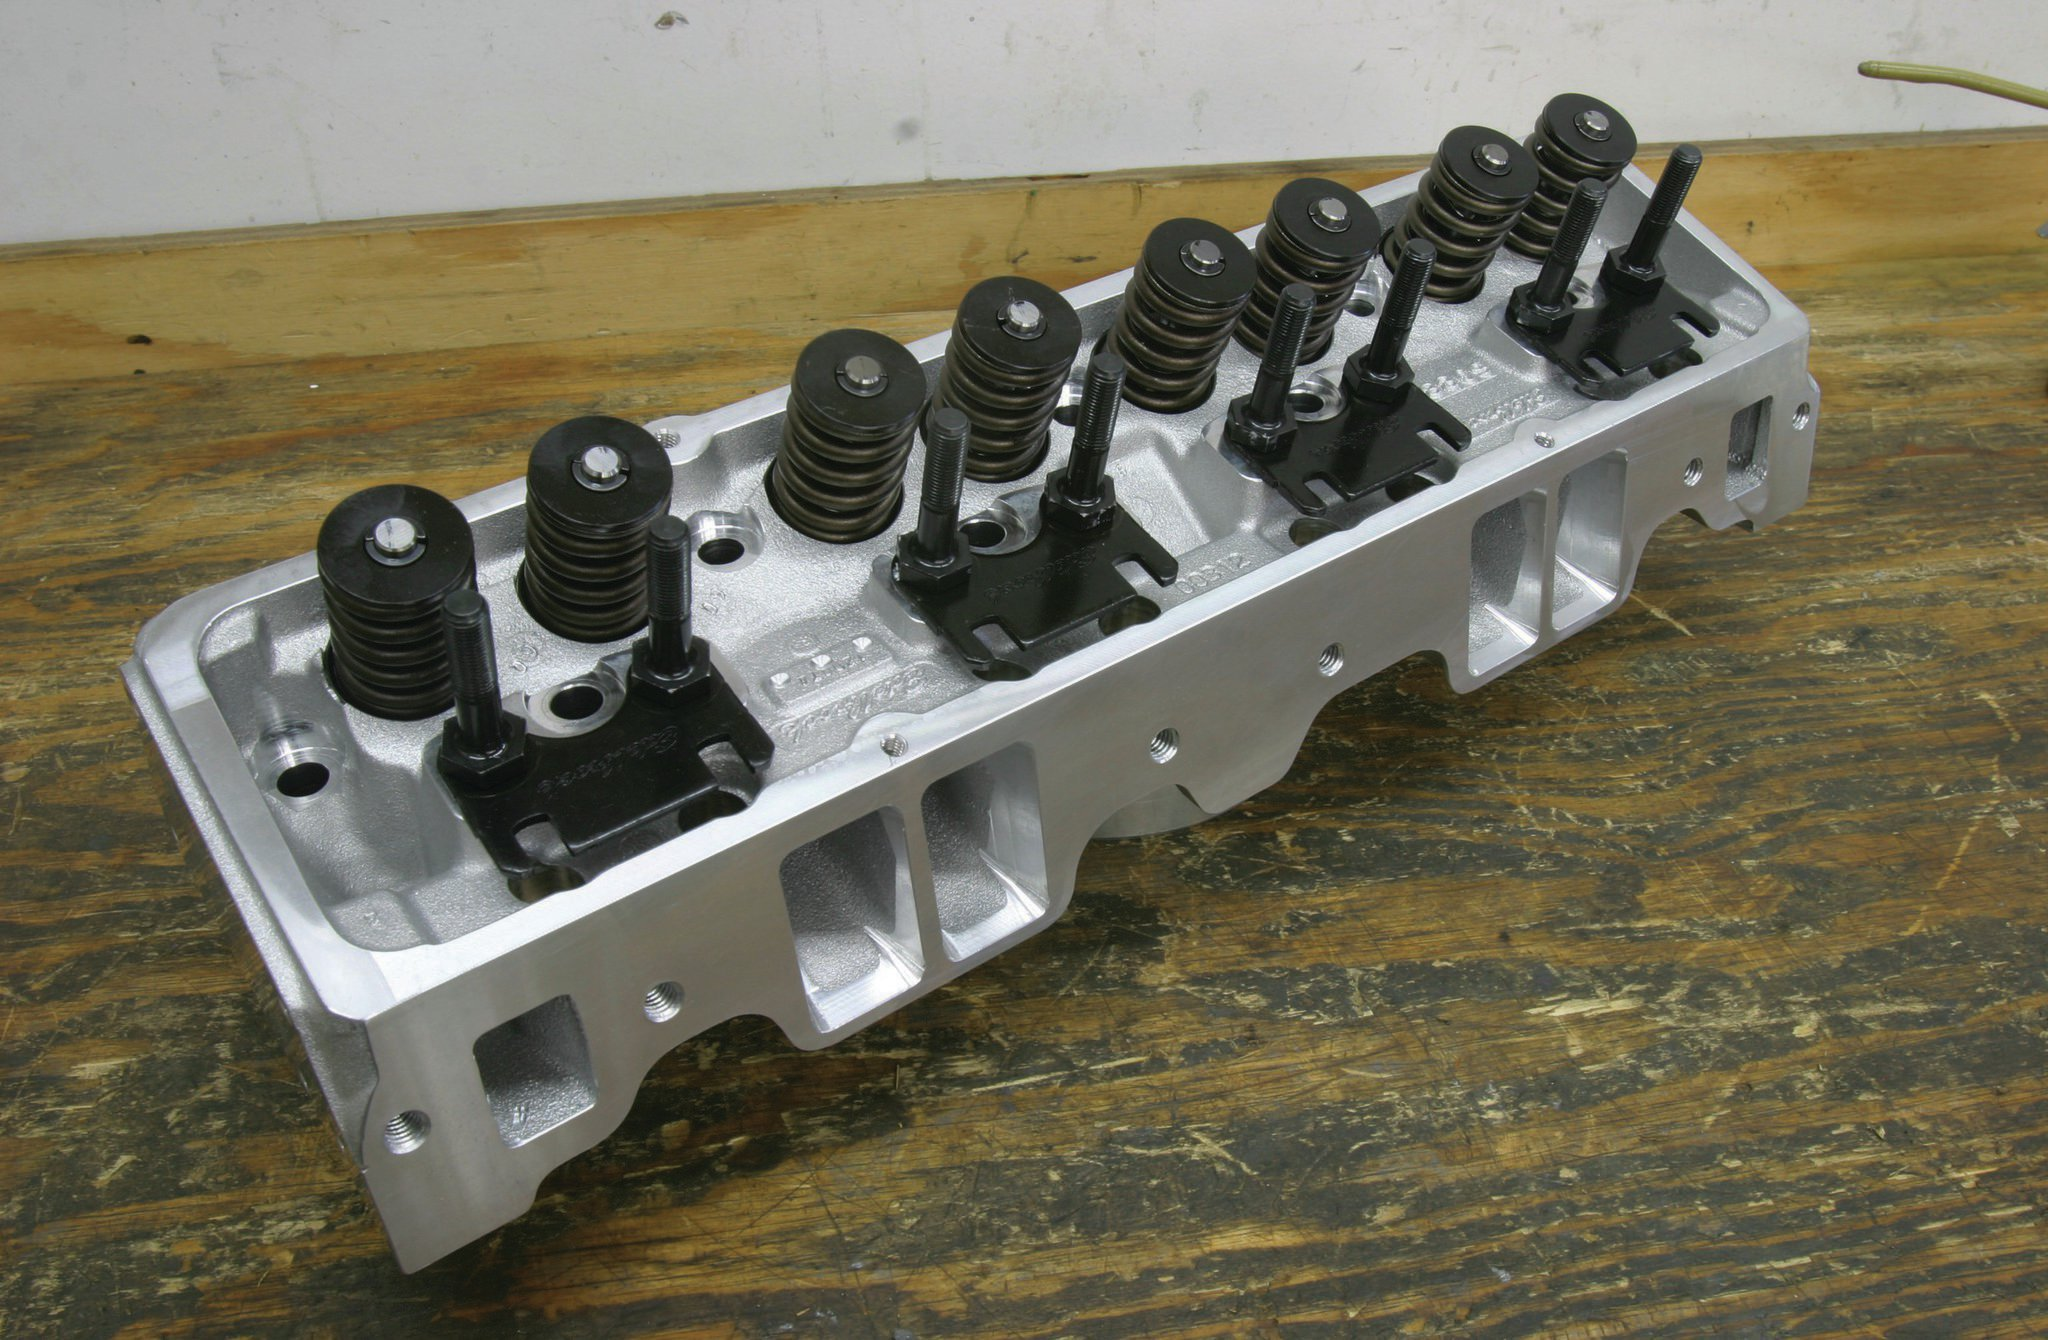 """The Edelbrock E-Street head is a good choice for a budget small-block. You can find more information on this head in our budget cylinder head test from the Sept. '12 issue. Just search for """"Car Craft budget cylinder head test"""" on CarCraft.com."""